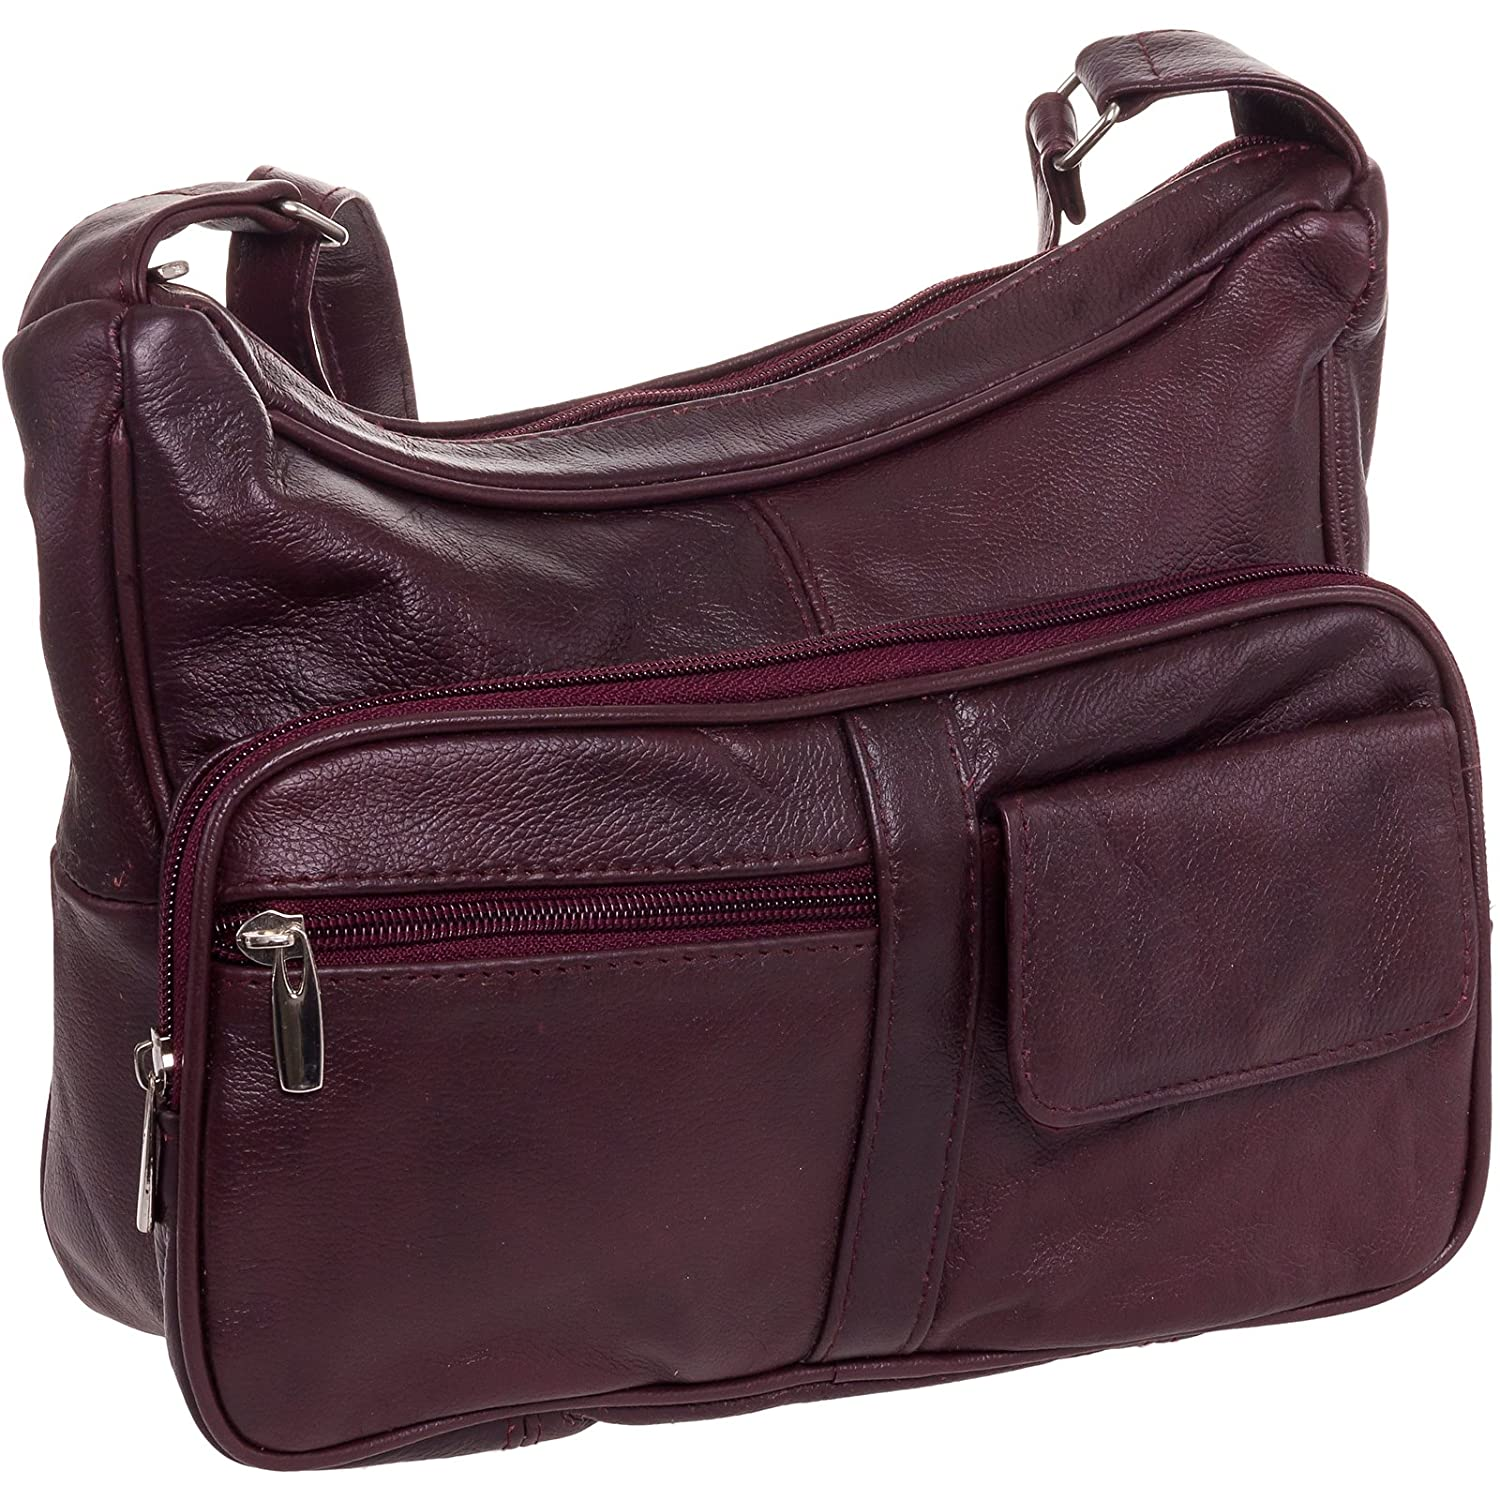 95061363a4b5 Roma Leathers Women's Wine Red Leather Crossbody Shoulder Bag